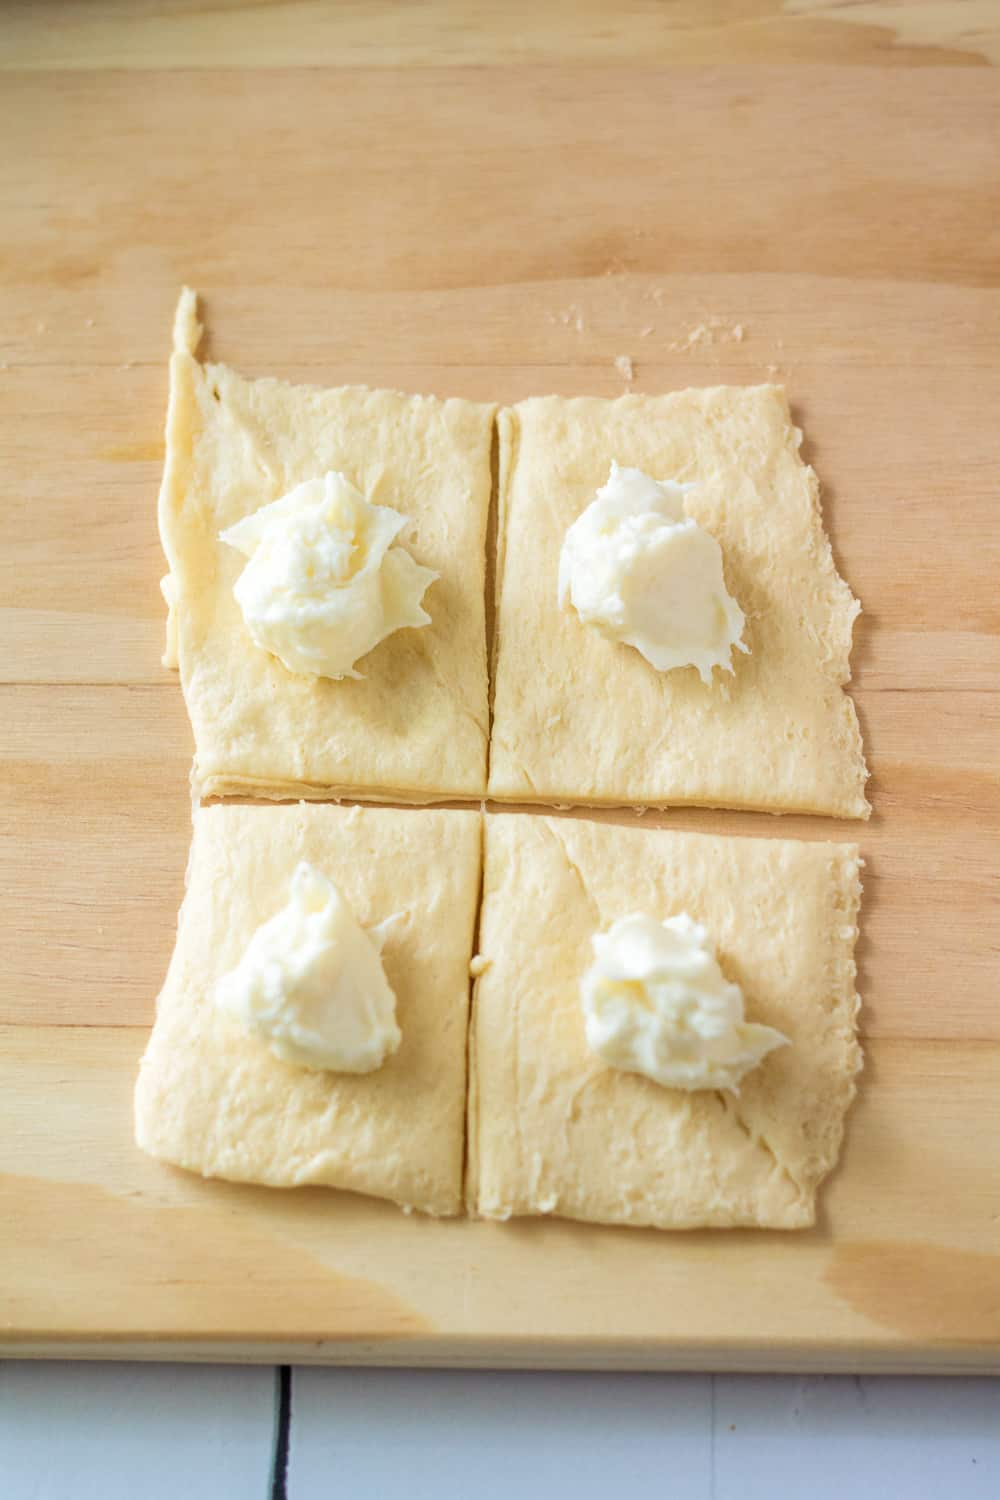 cream cheese filling scooped into crescent roll dough squares.